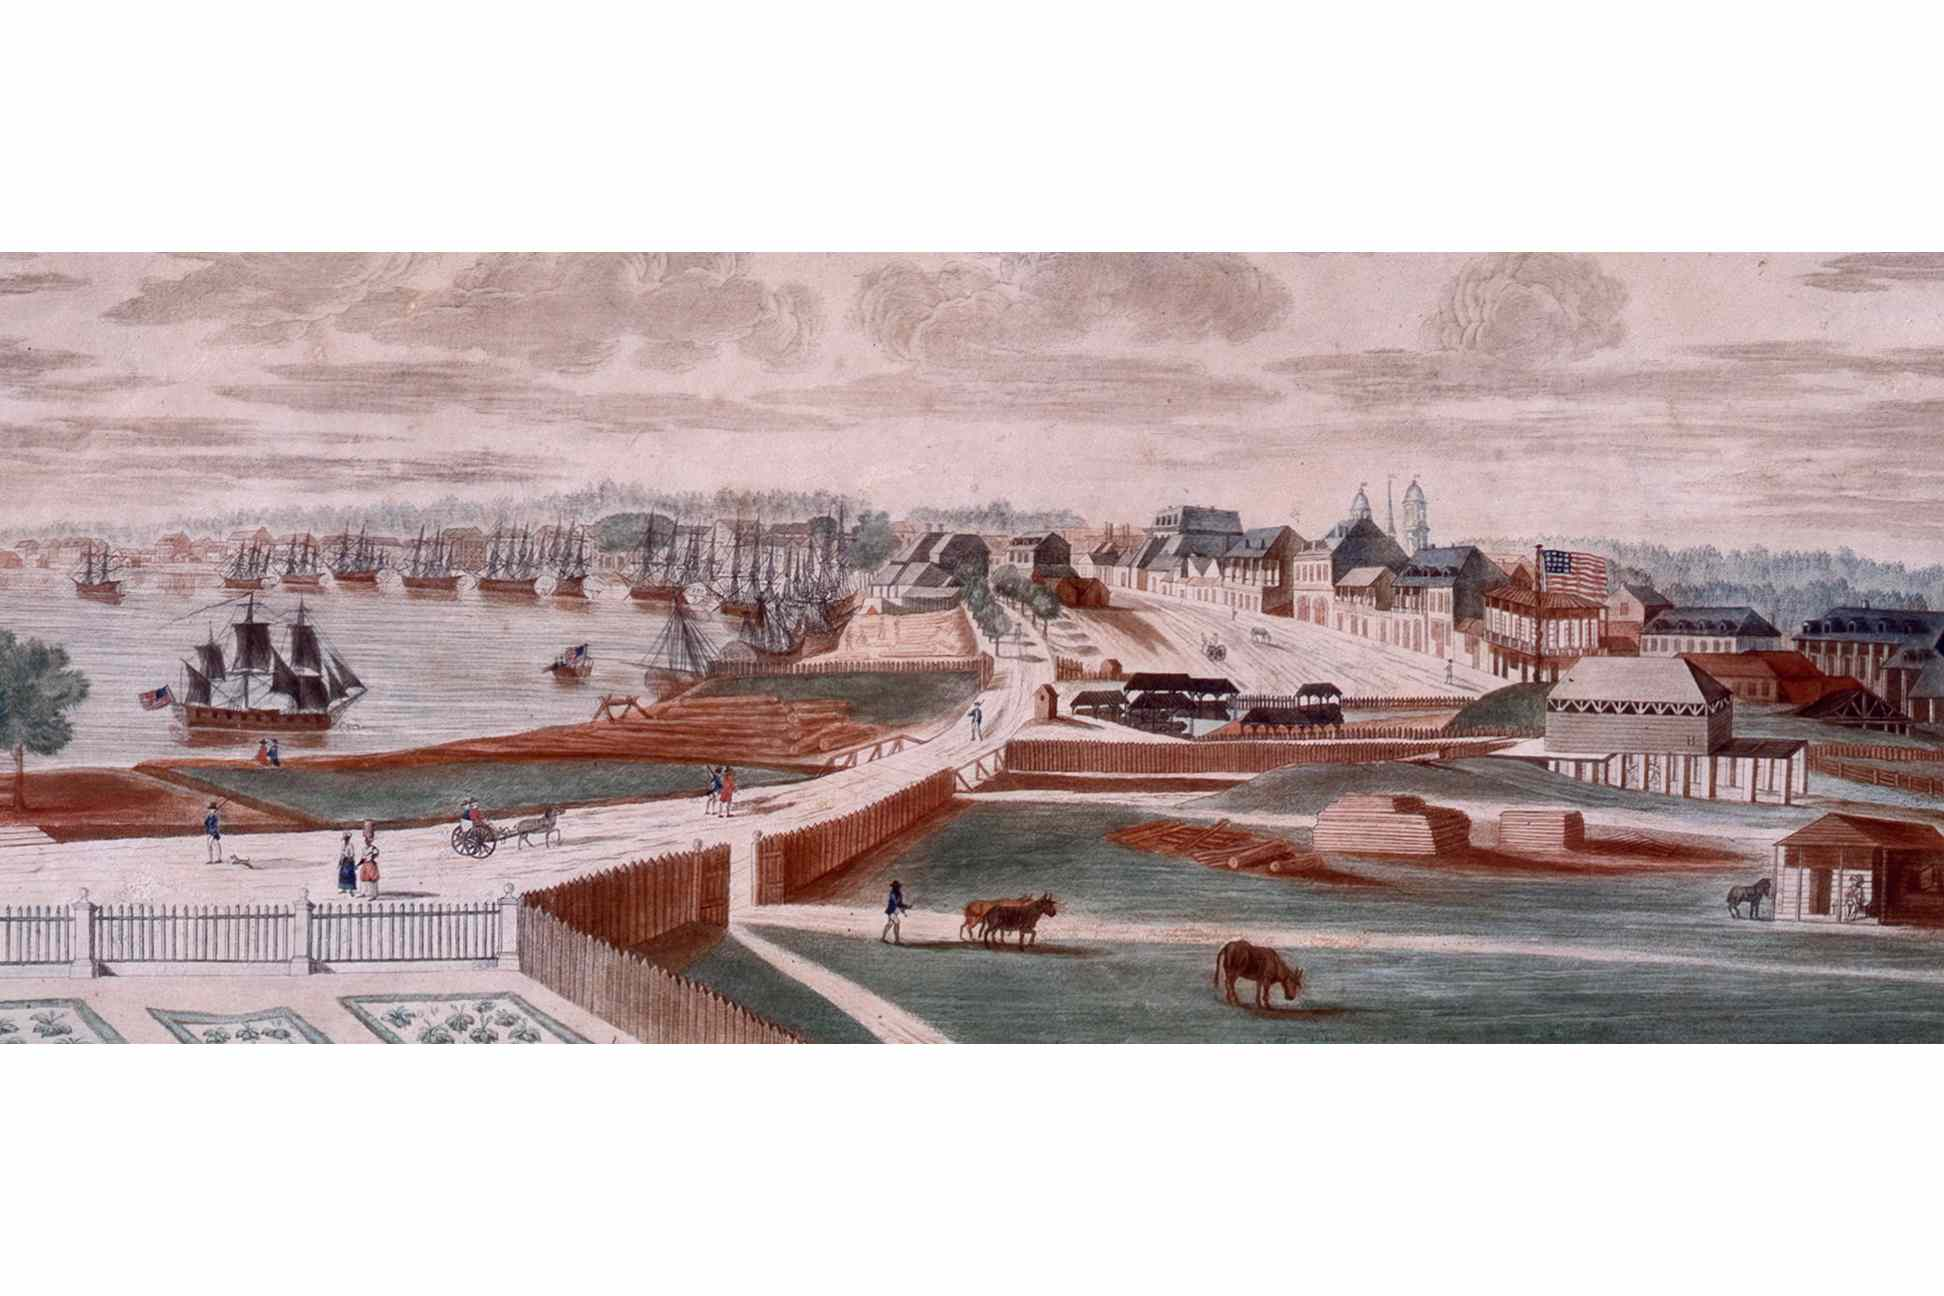 a view of the New Orleans in 1803